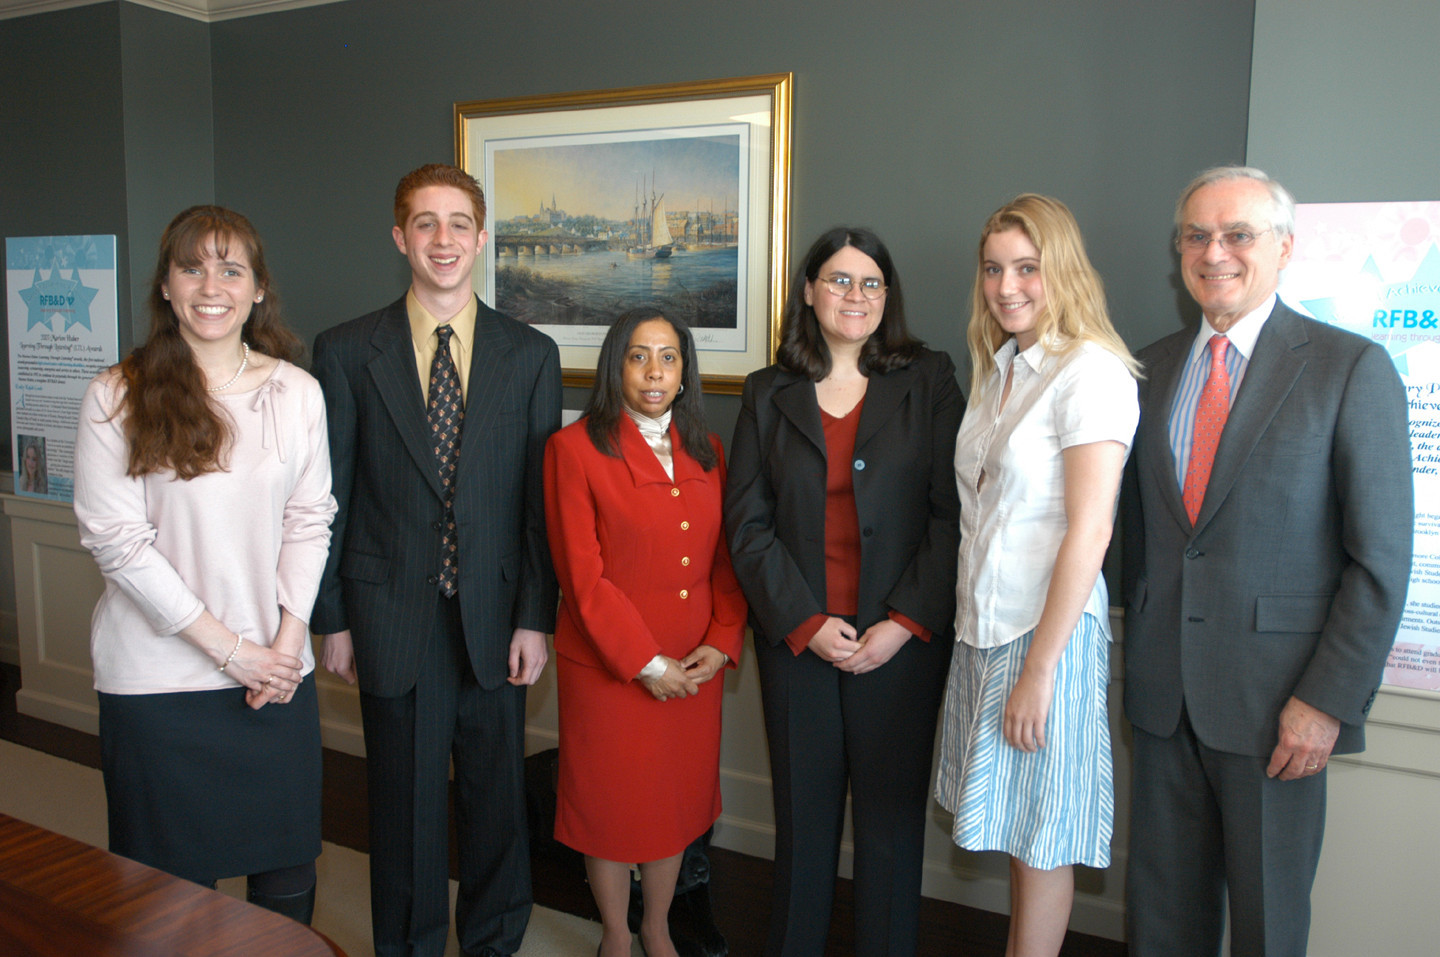 The 2003 NAA Winners were feted at an award luncheon on Capitol Hill. (l to r:  Sarah M. Swords, Justin Sirico Stroup, RFB&D National Board Vice Chair Celeste V. Lopes. Esq., Helaine Blumenthal, Emily Kalah Gade, RFB&D President and CEO, Richard O. Scribner.